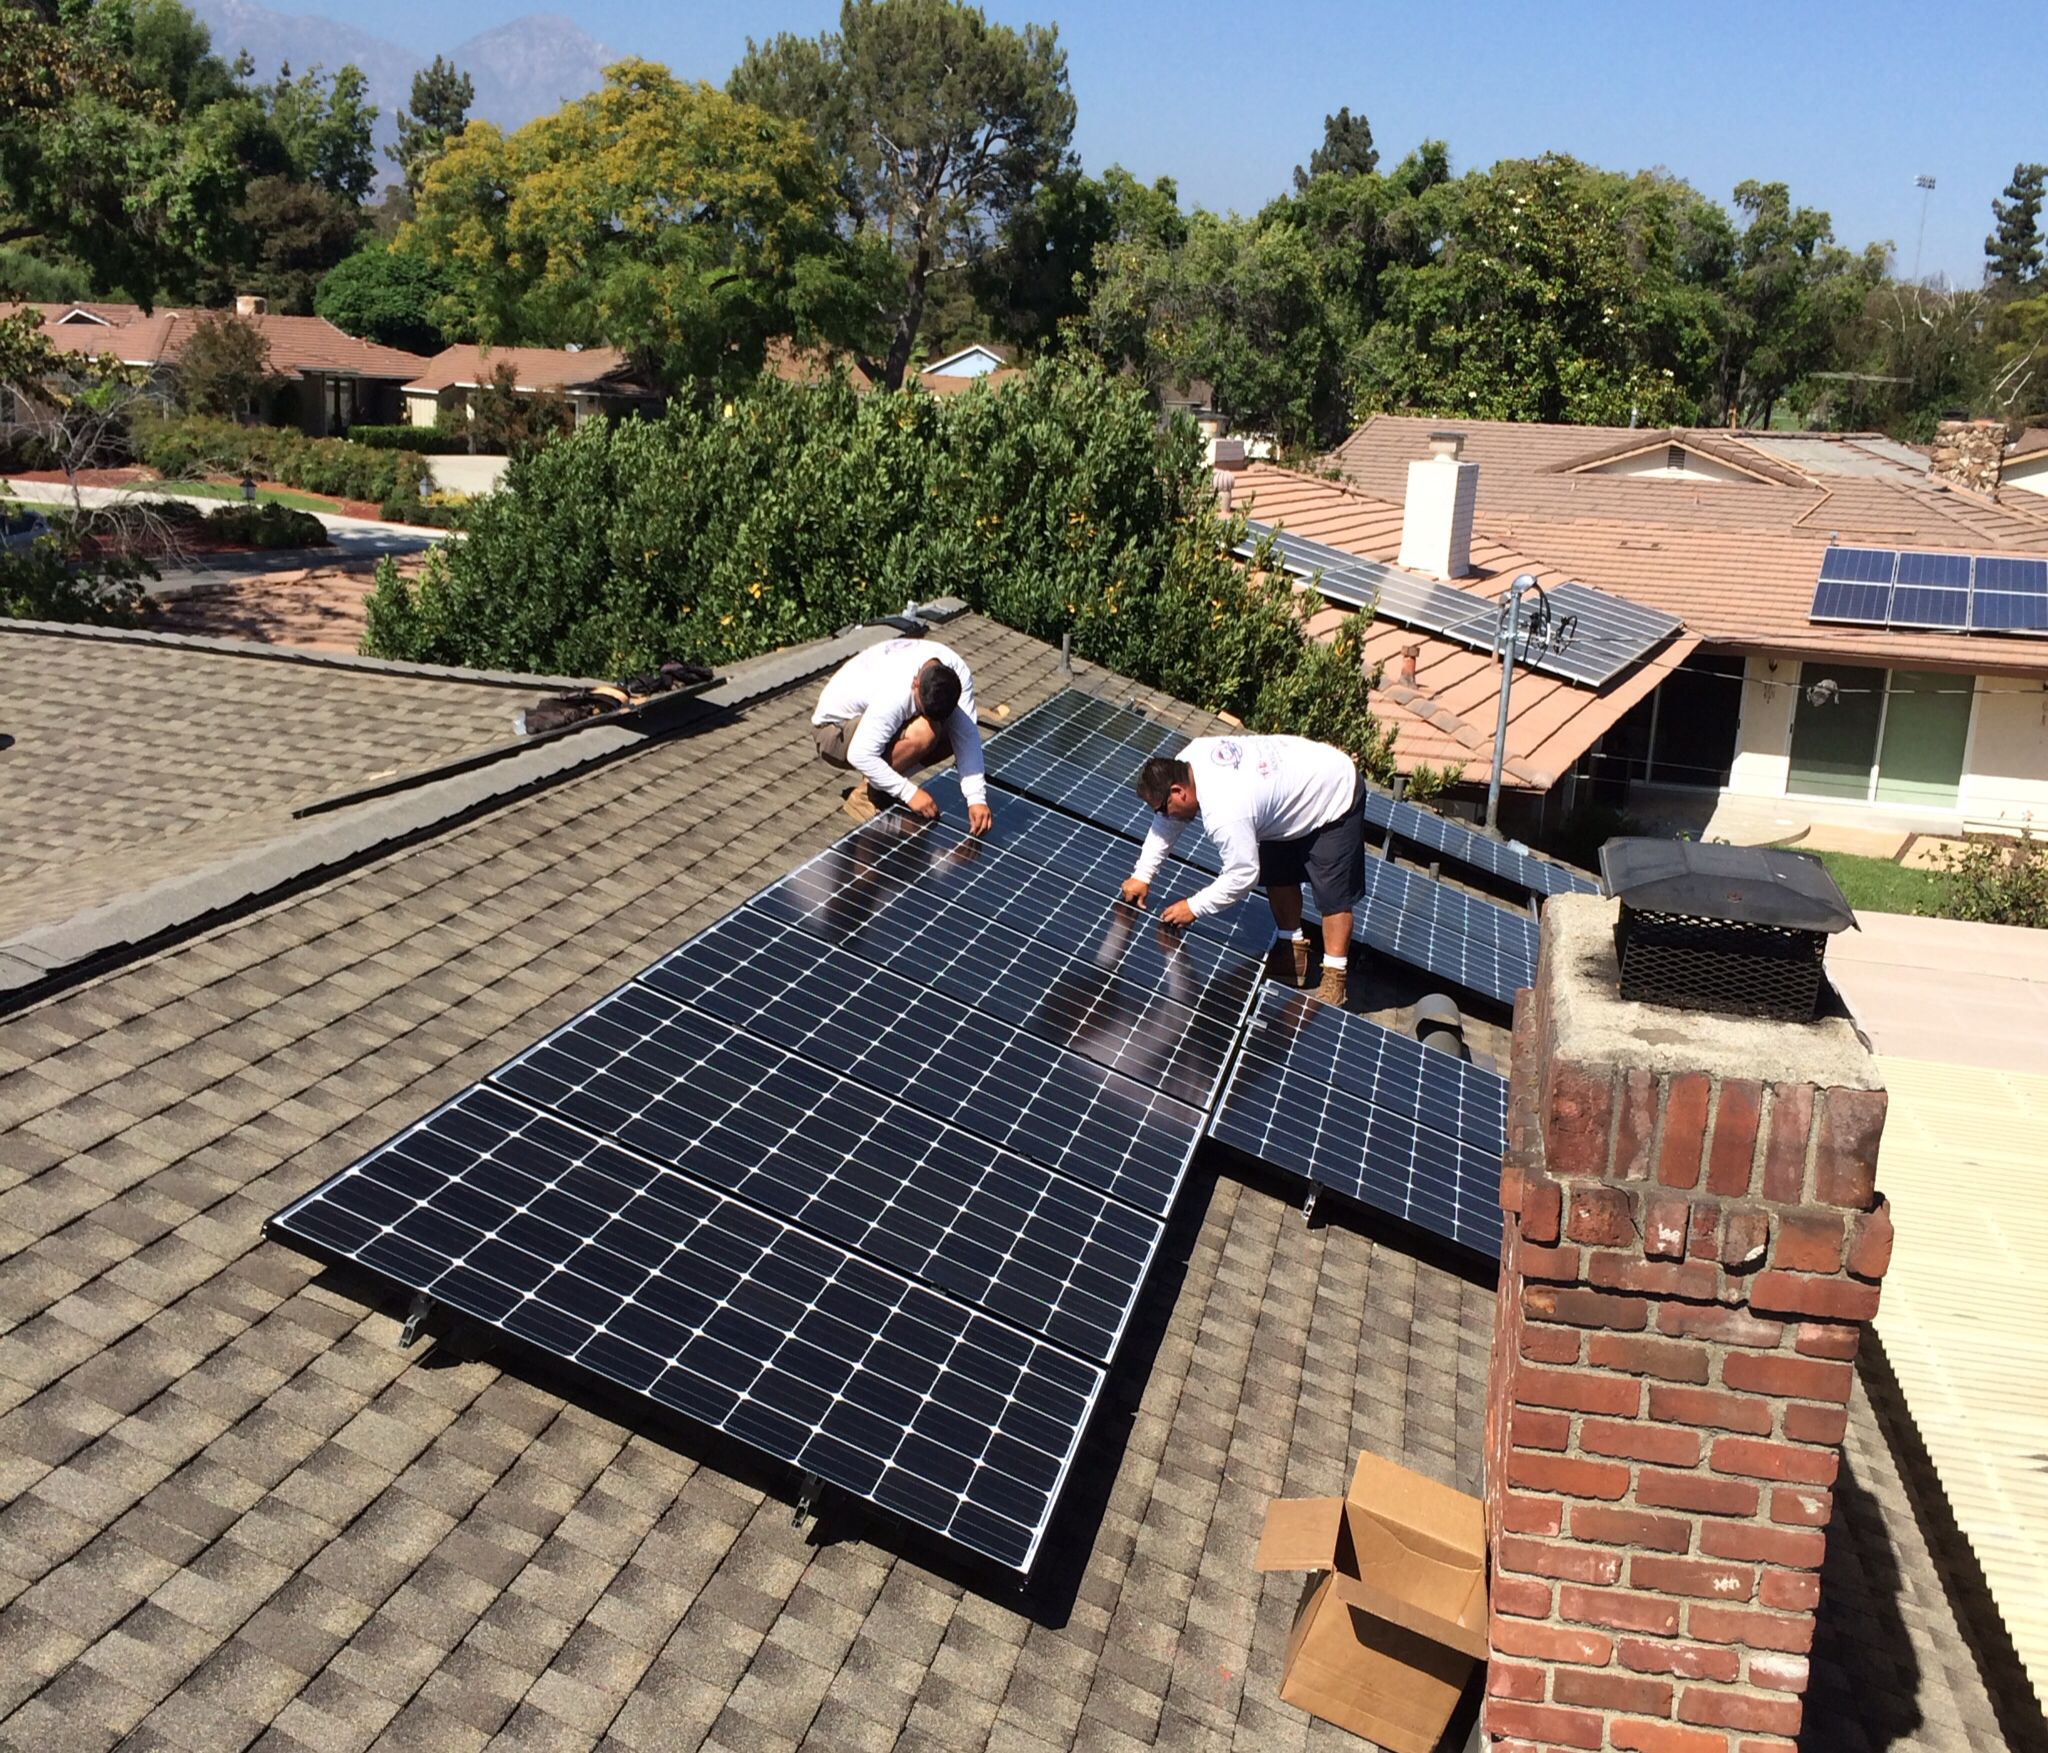 Installing Lg Solar System In Claremont Ca On A Brand New Gaf Golden Pledge Hd Shingle Roof Solar Roof Shingles Solar Roof Roof Shingles